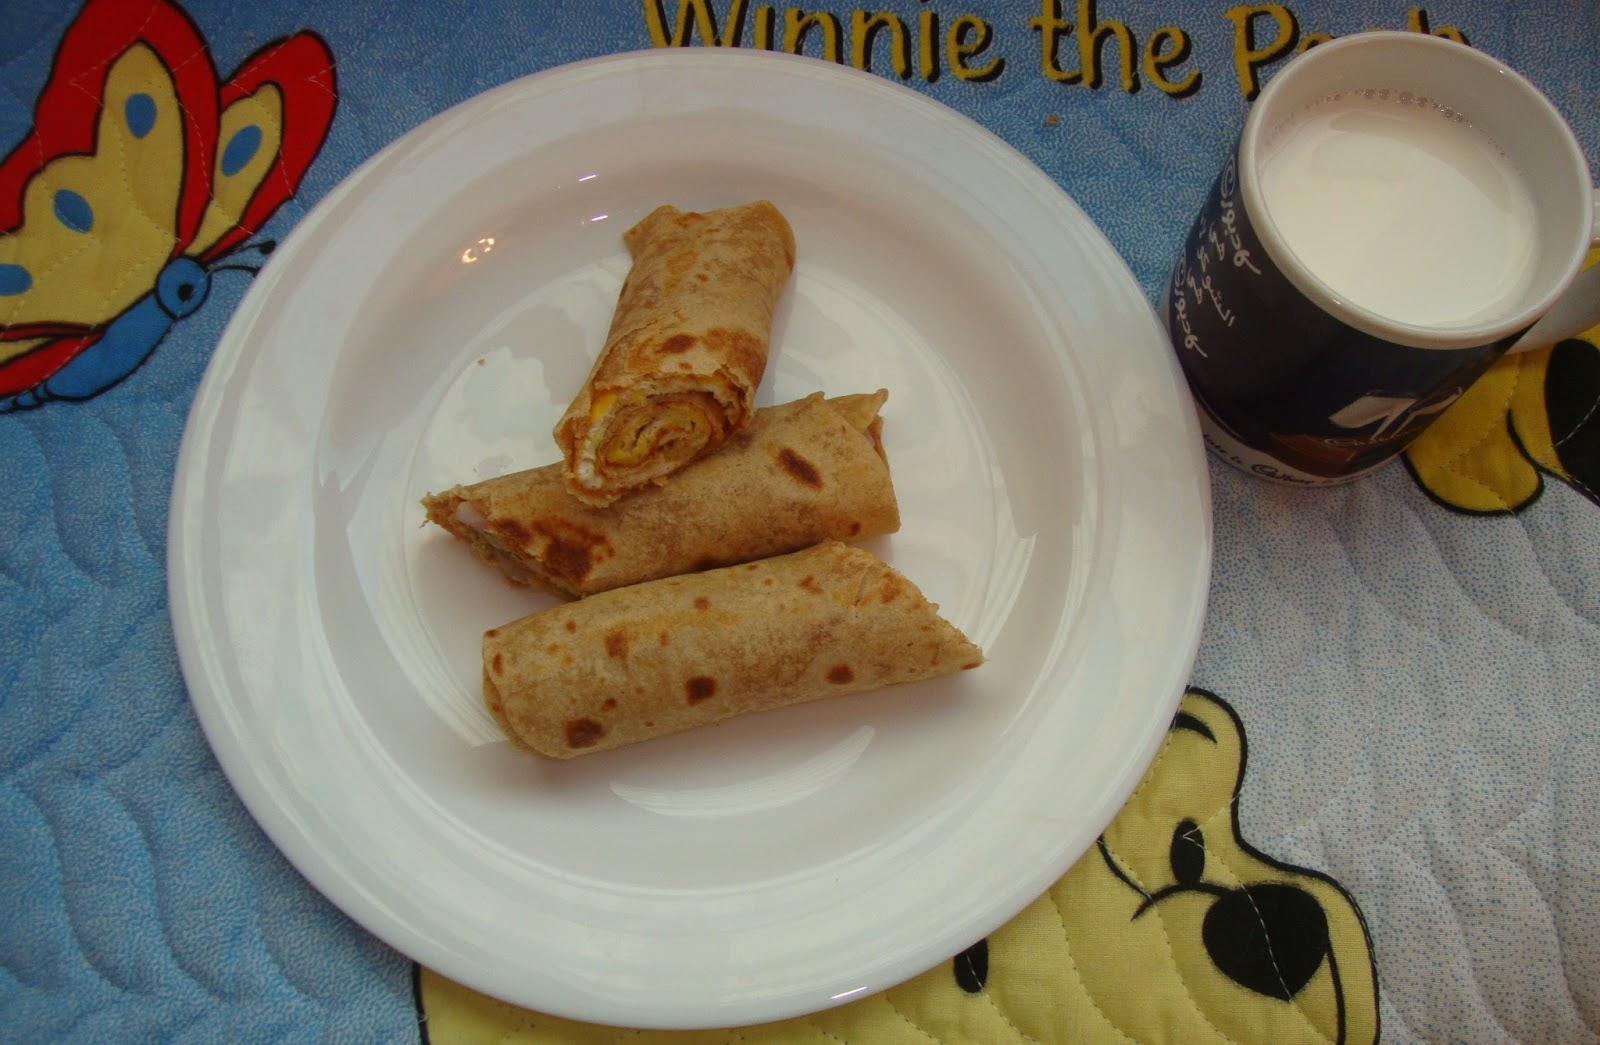 Chapathi Egg Roll / Egg Frankie (Egg Roll with Indian Flat Bread